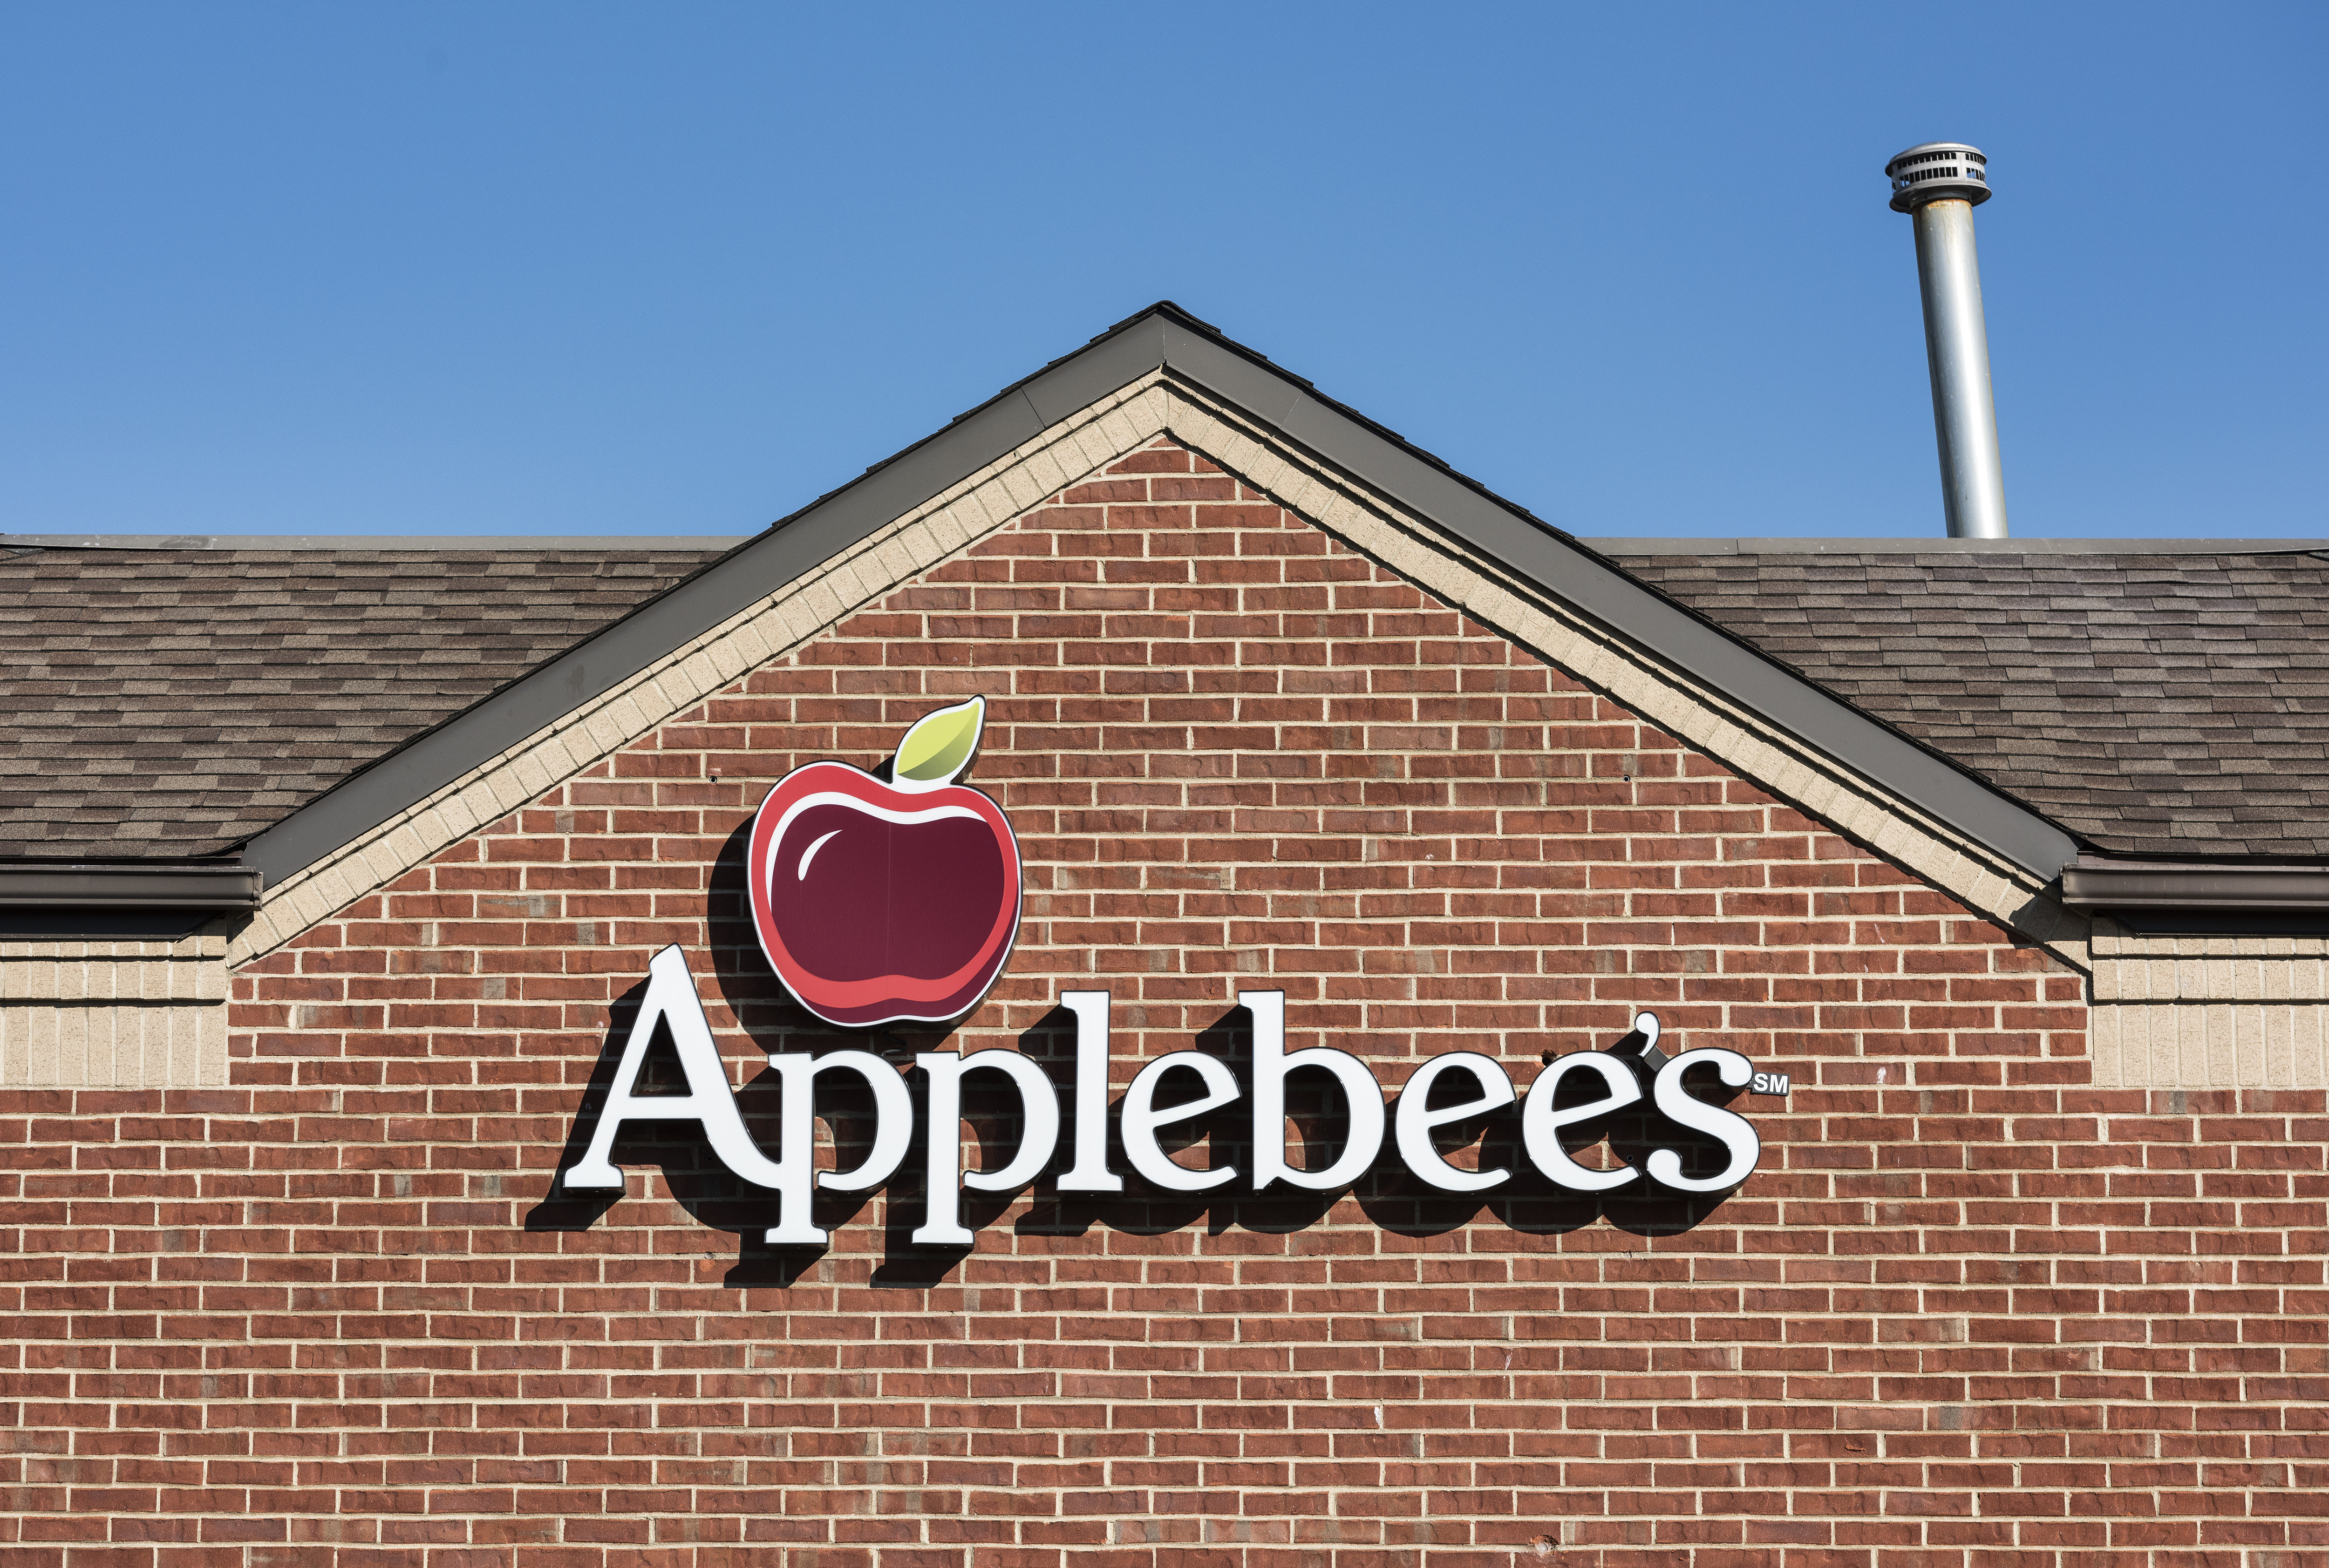 Applebee's restaurant logo is seen at a location in Poughkeepsie, New York.